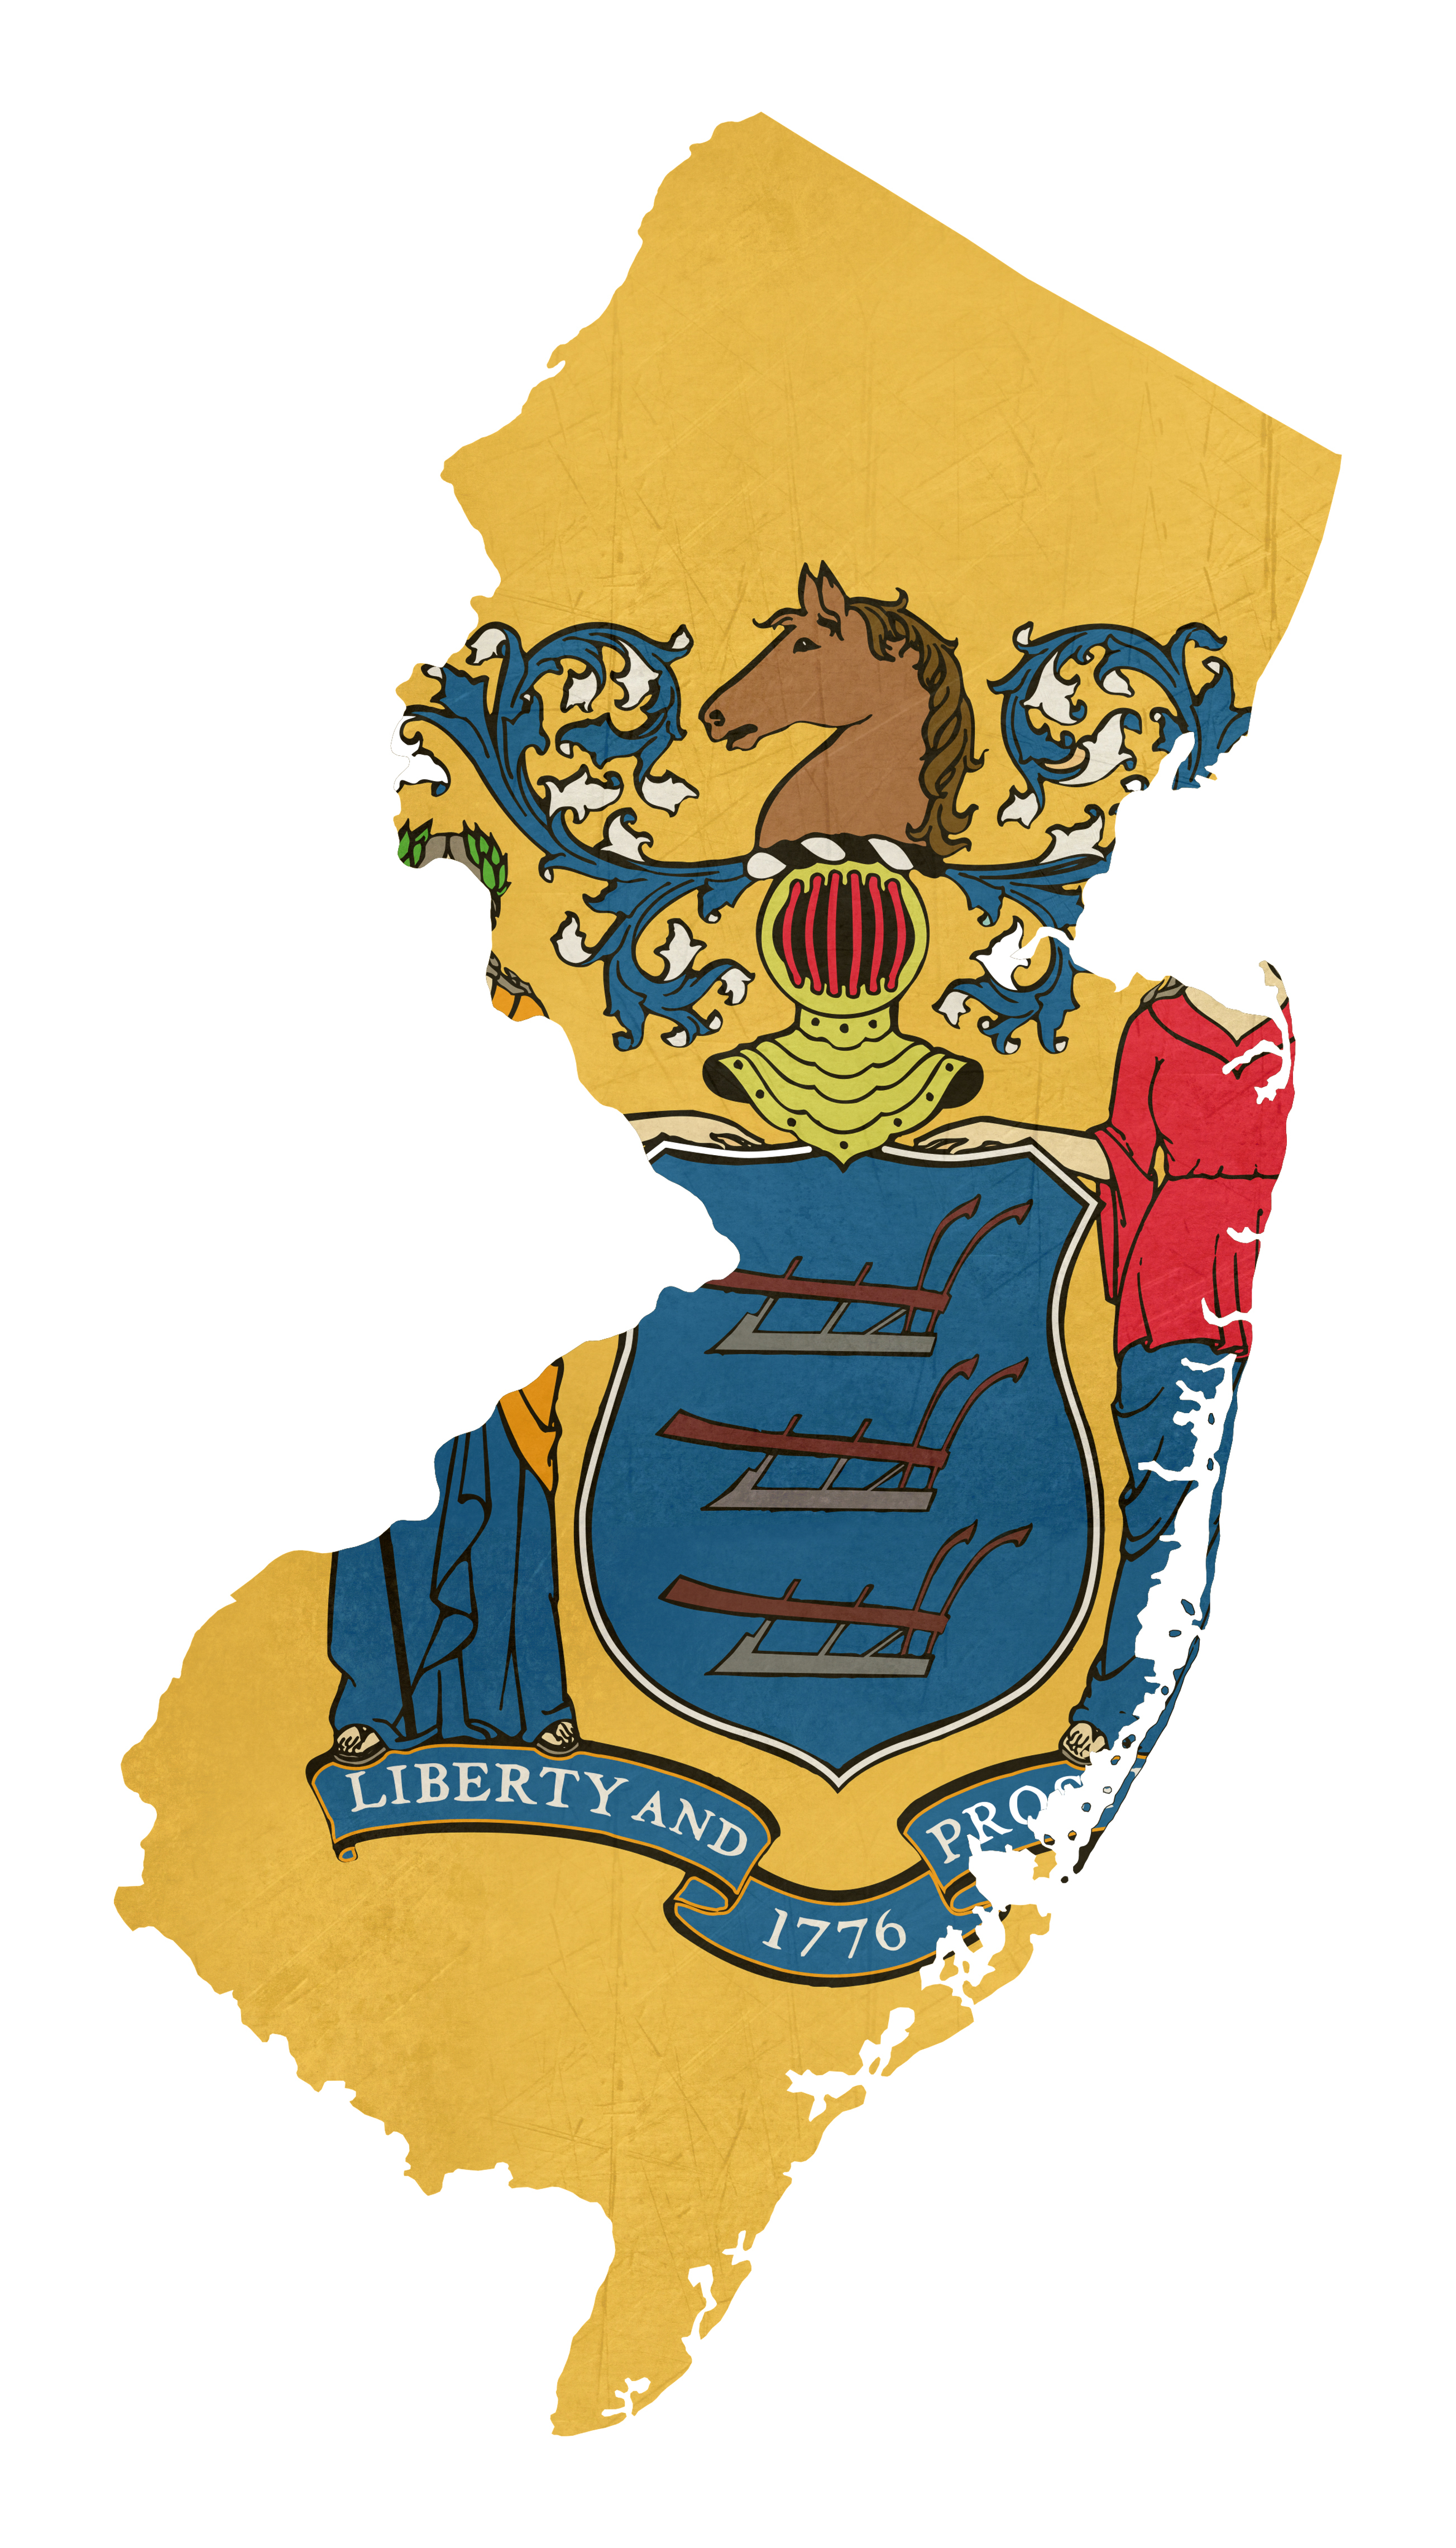 New Jersey Architect Continuing Education Requirements